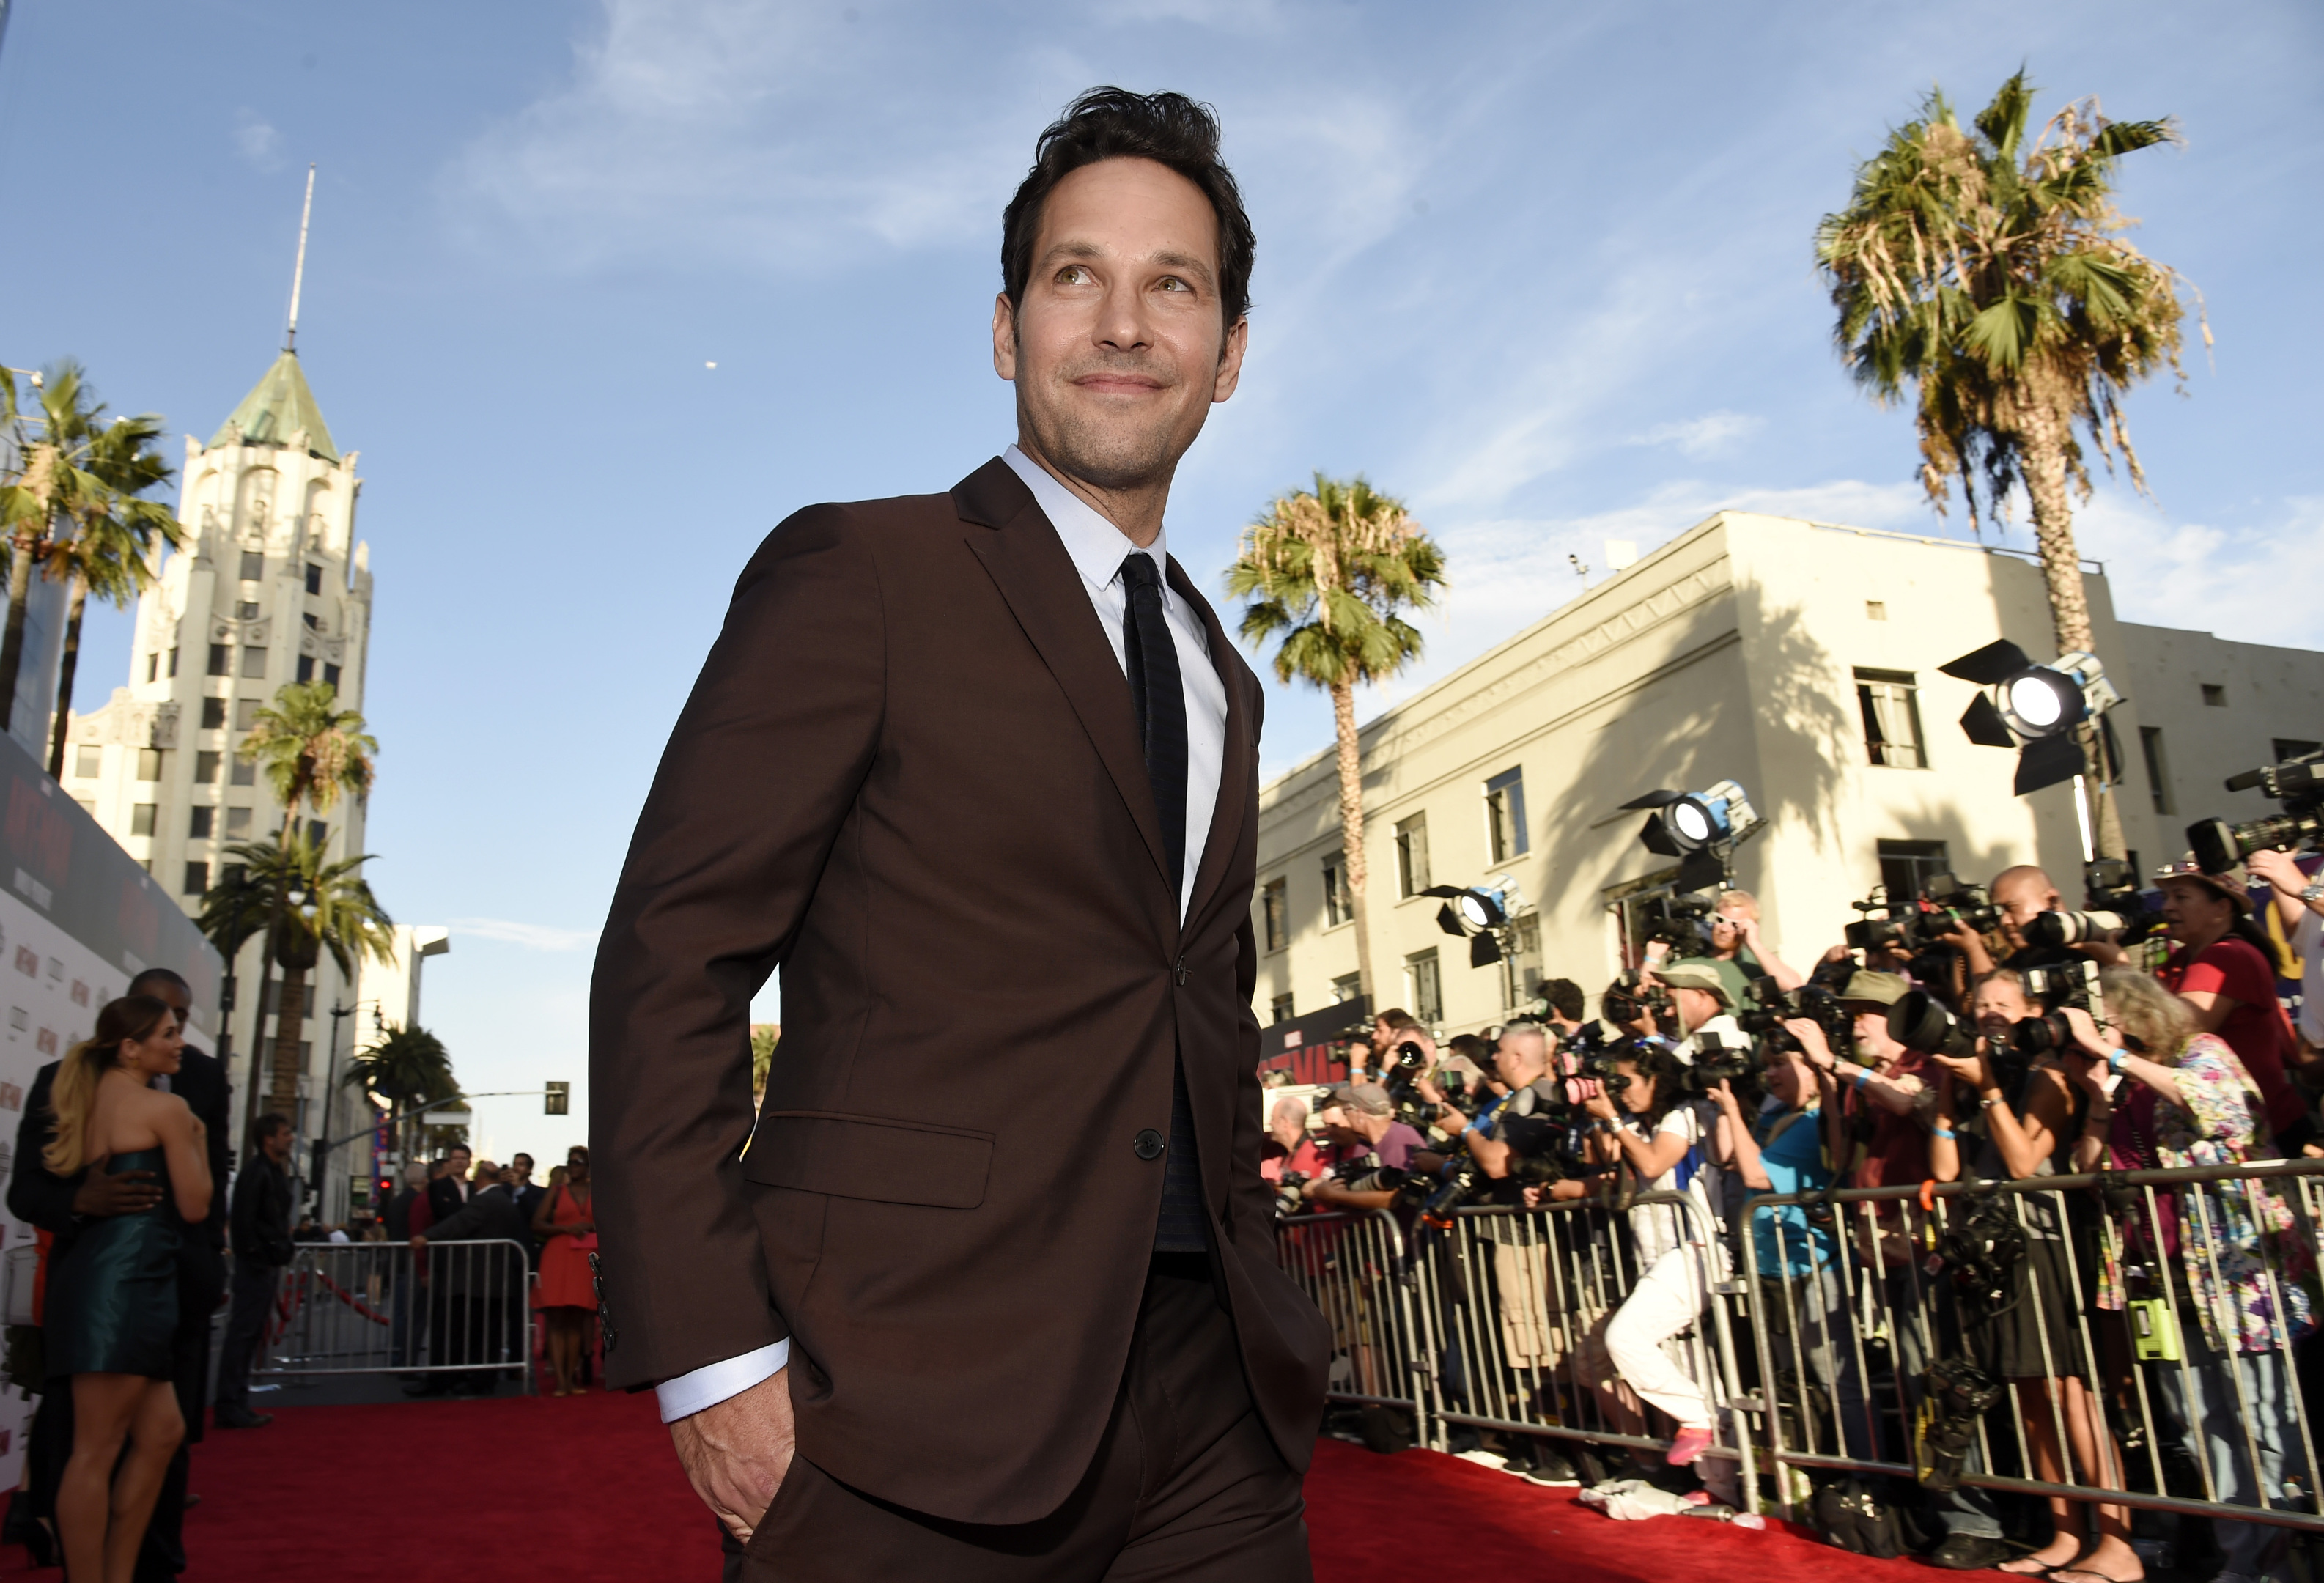 """Paul Rudd, star of """"Ant-Man,"""" walks the red carpet at the premiere of the film in LA."""